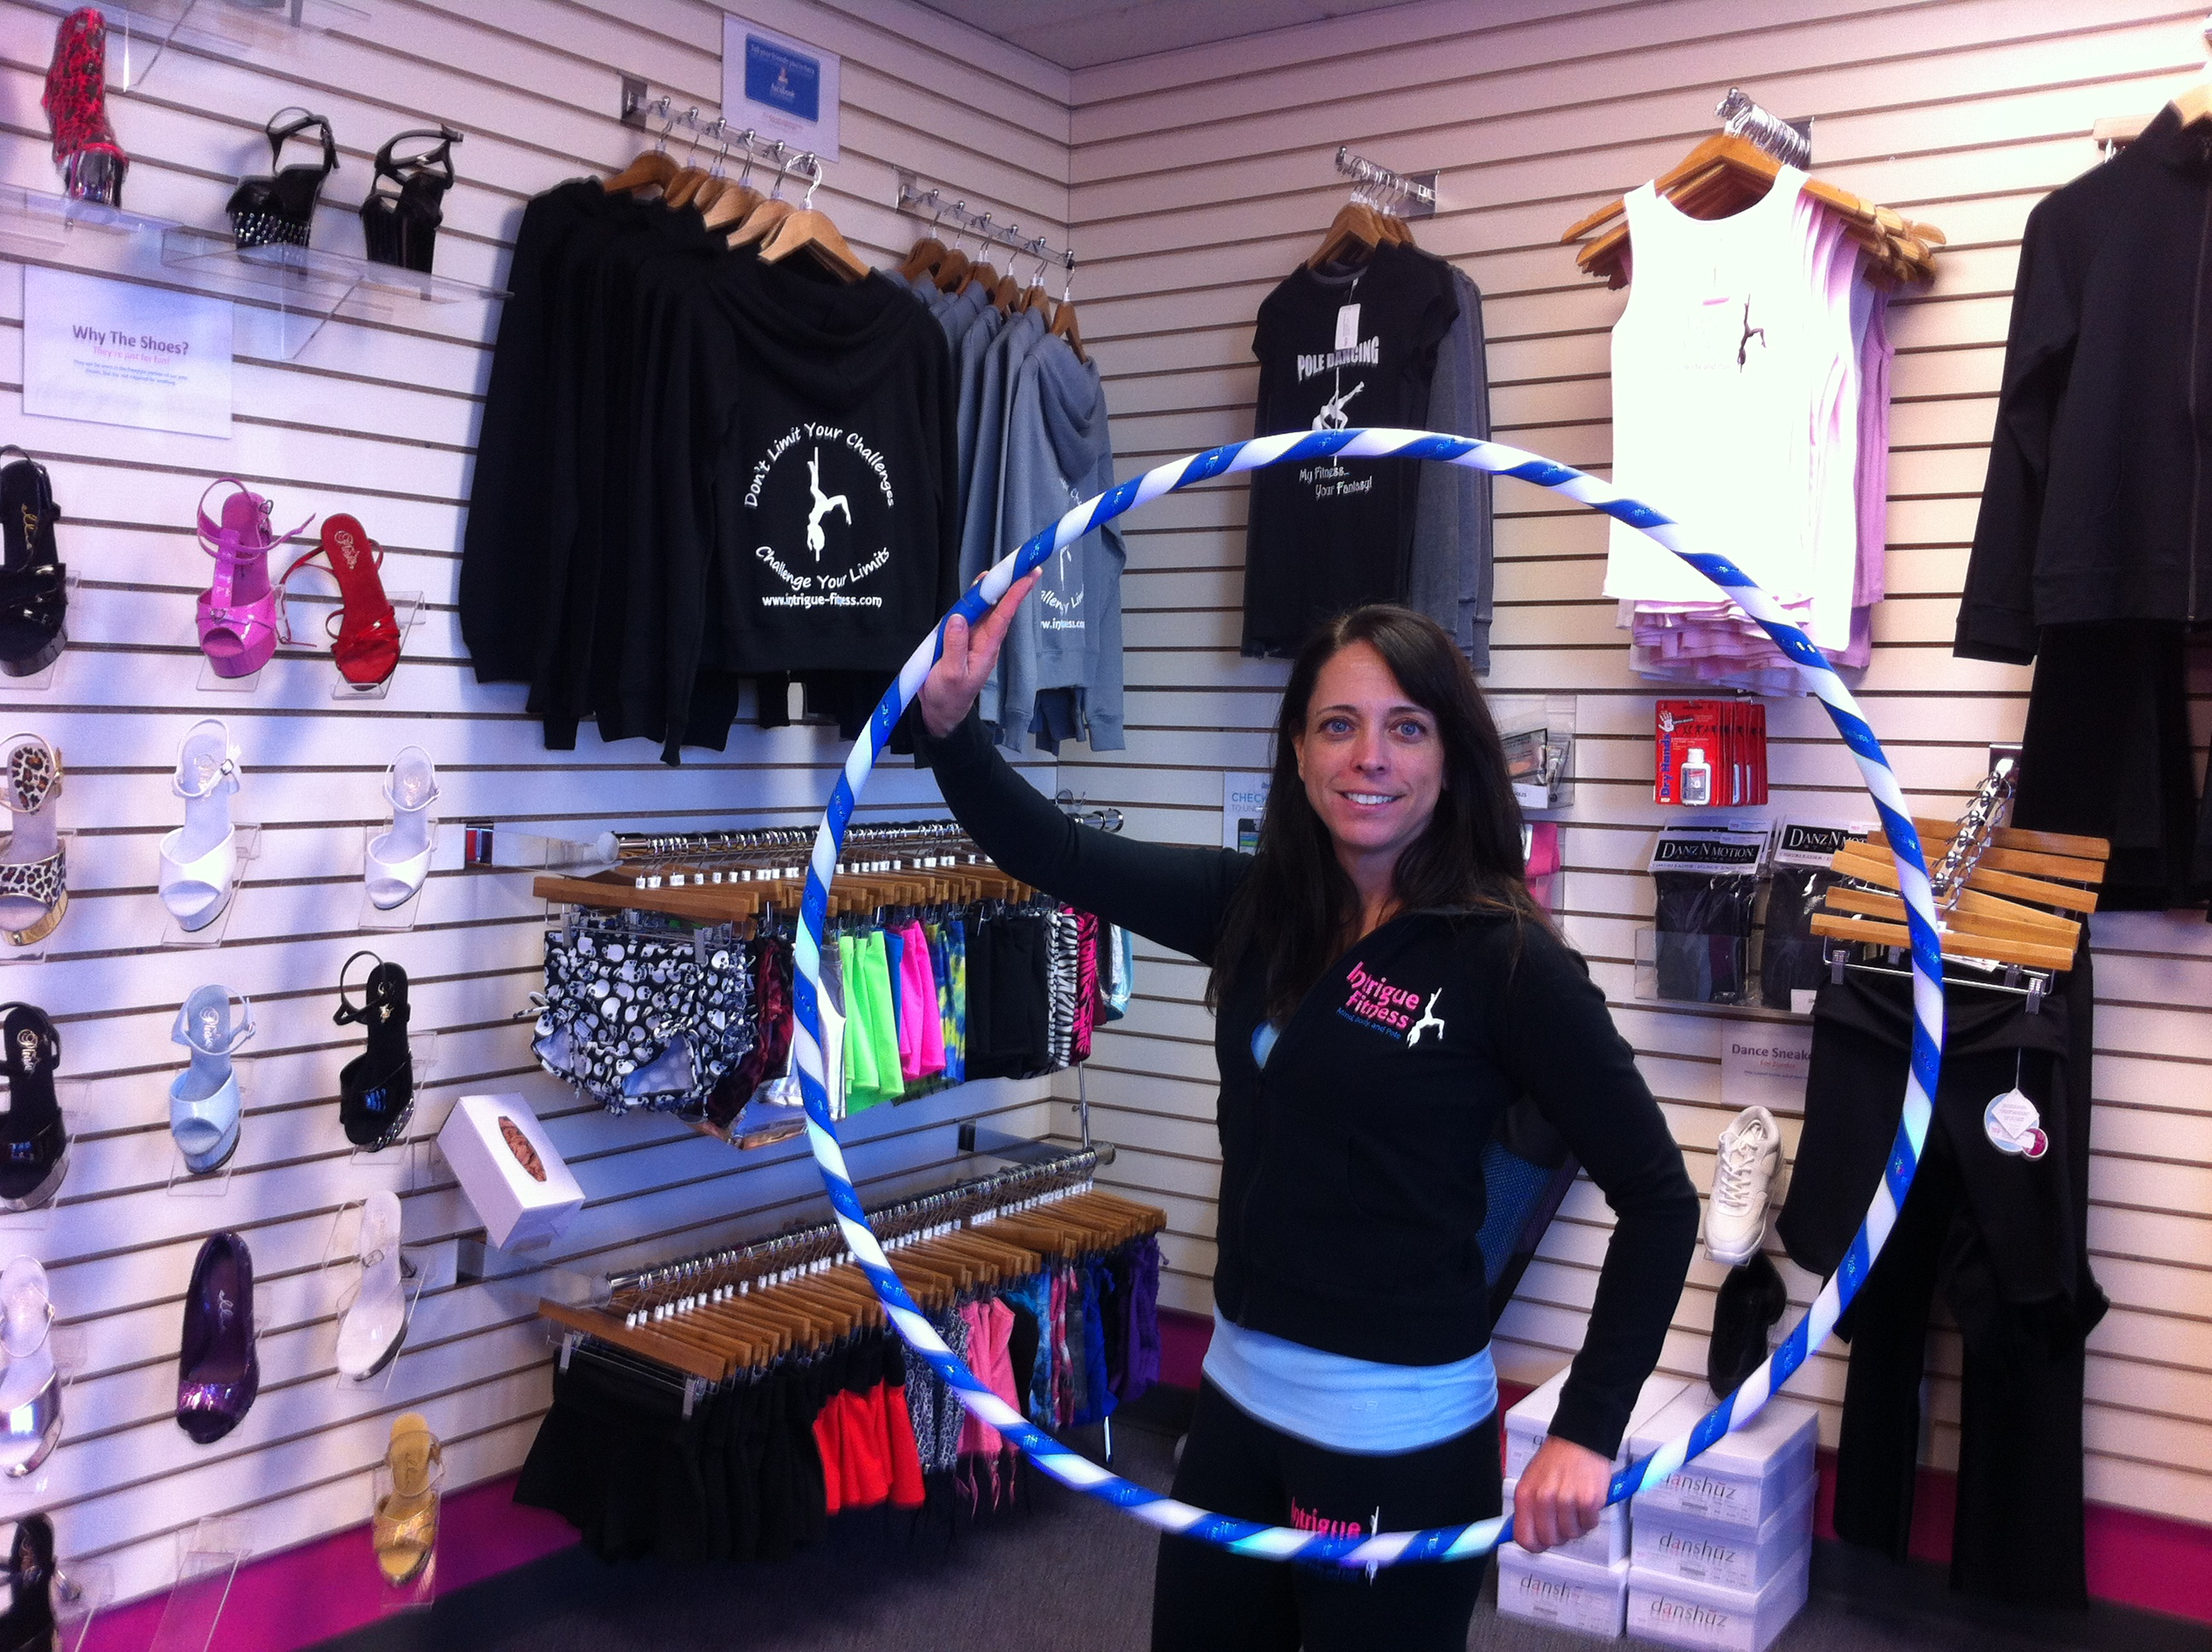 Owner Linda Costoff shows one of the Hula Hoops at Intrigue Fitness